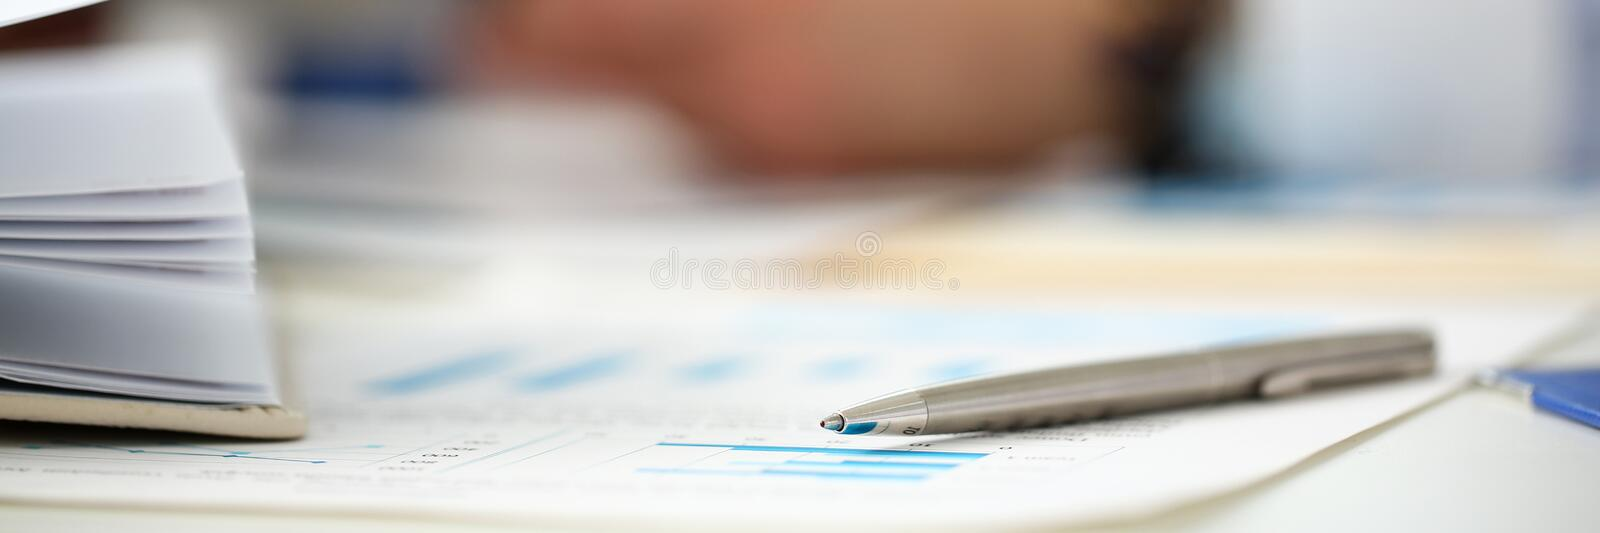 Silver pen lie on important paper at table with group of colleagues in background royalty free stock photo